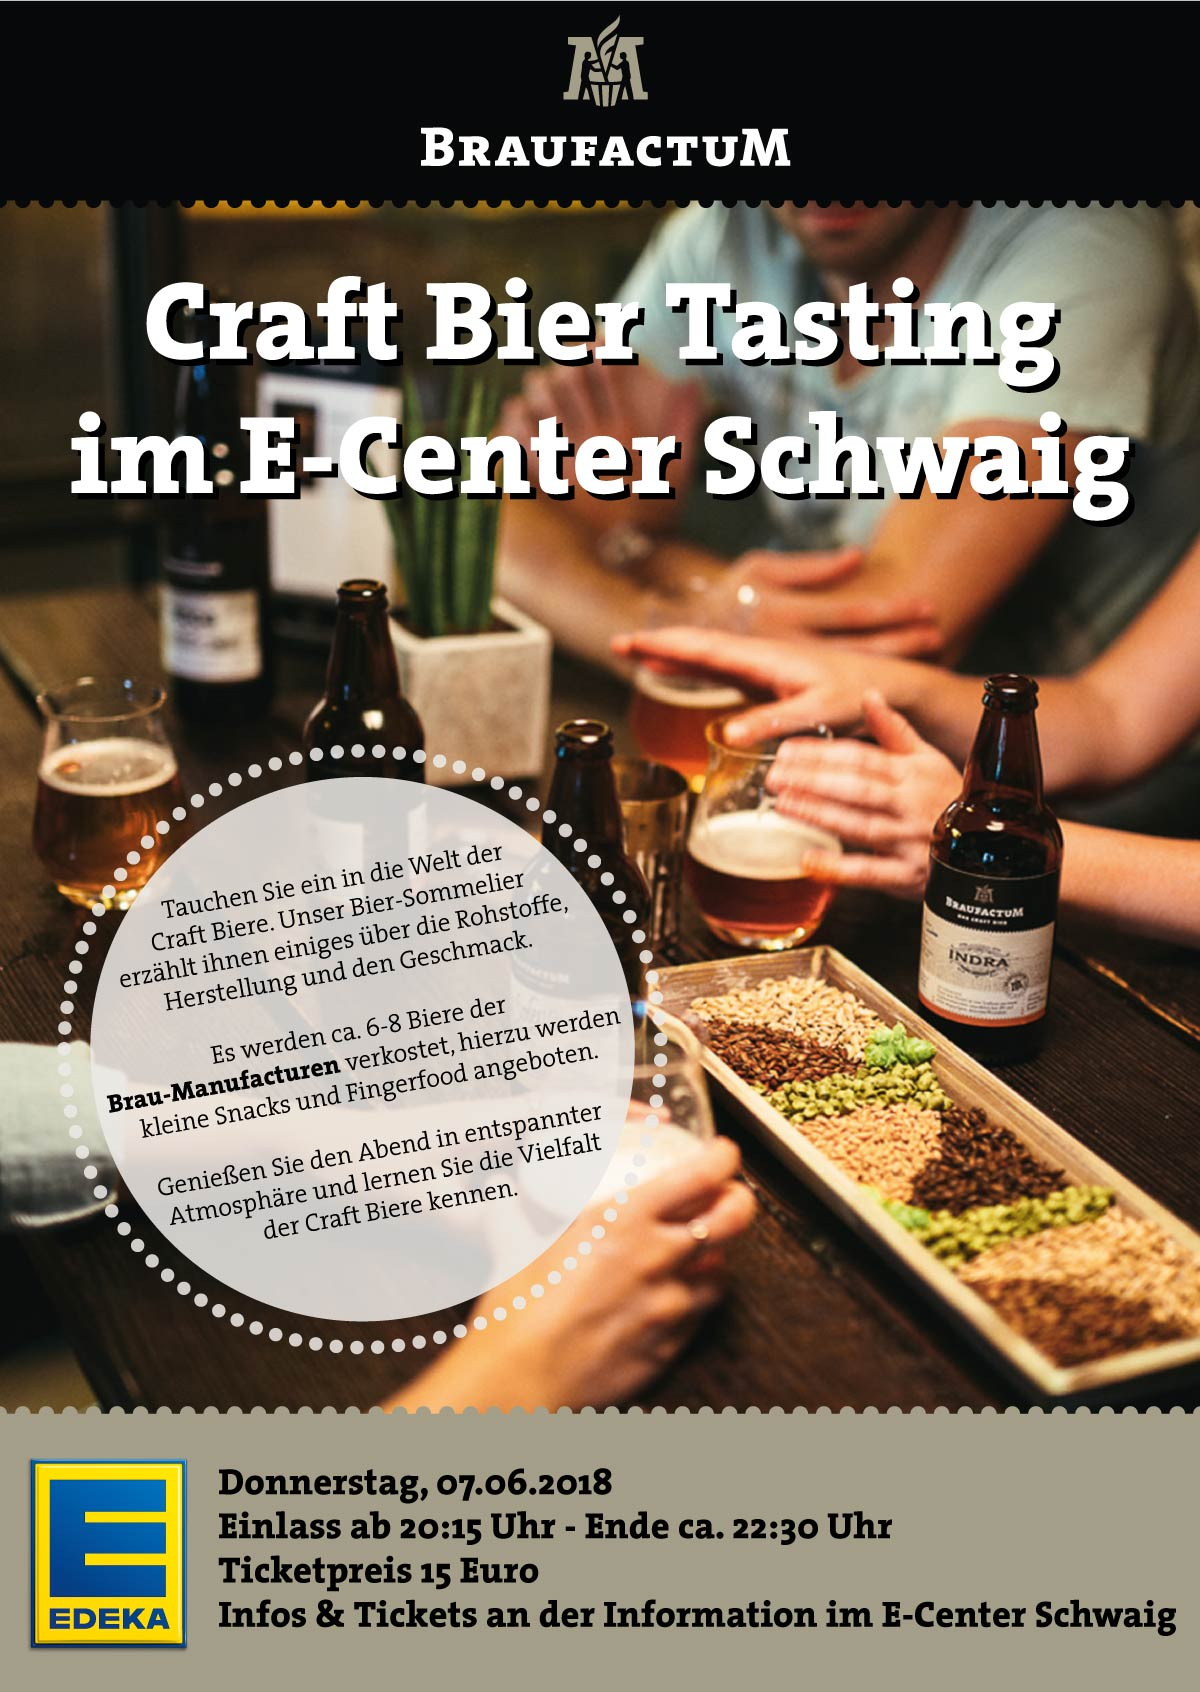 Craft Bier Tasting E-Center Schwaig